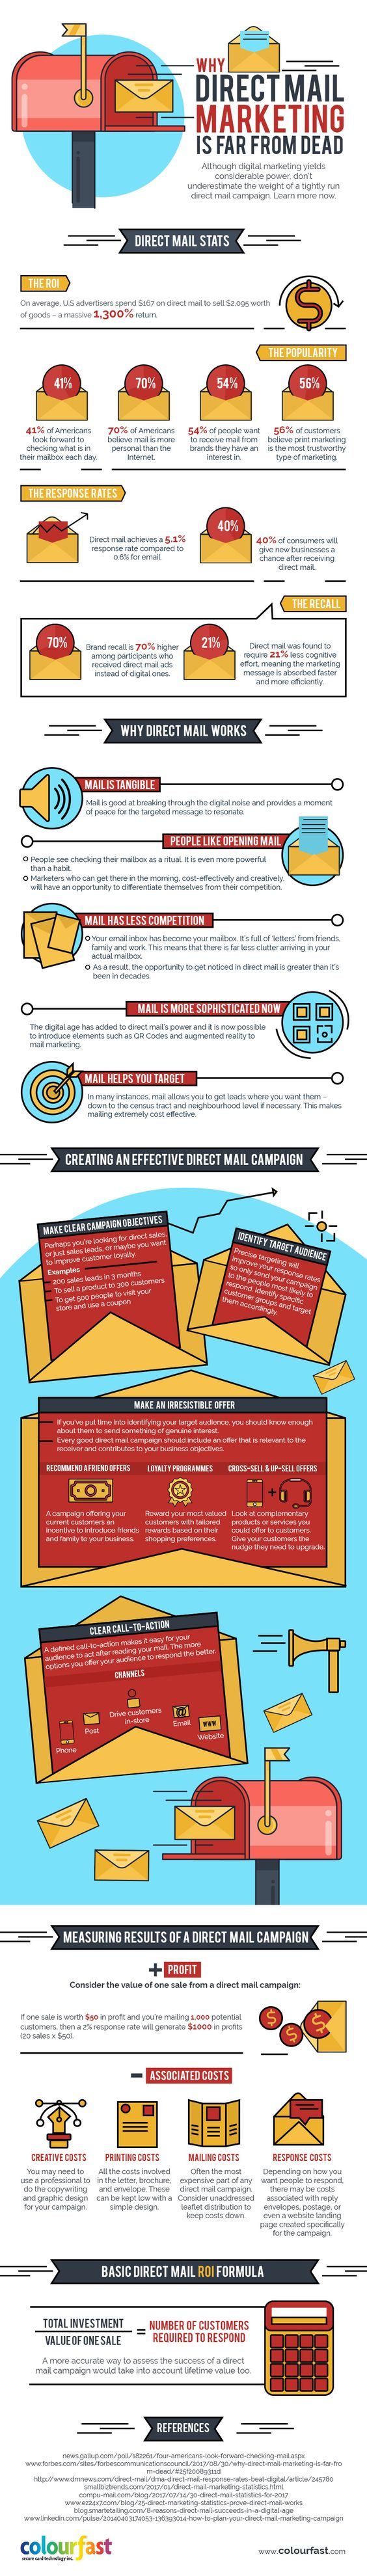 Why Direct Mail Marketing is Far From Dead – Infographic